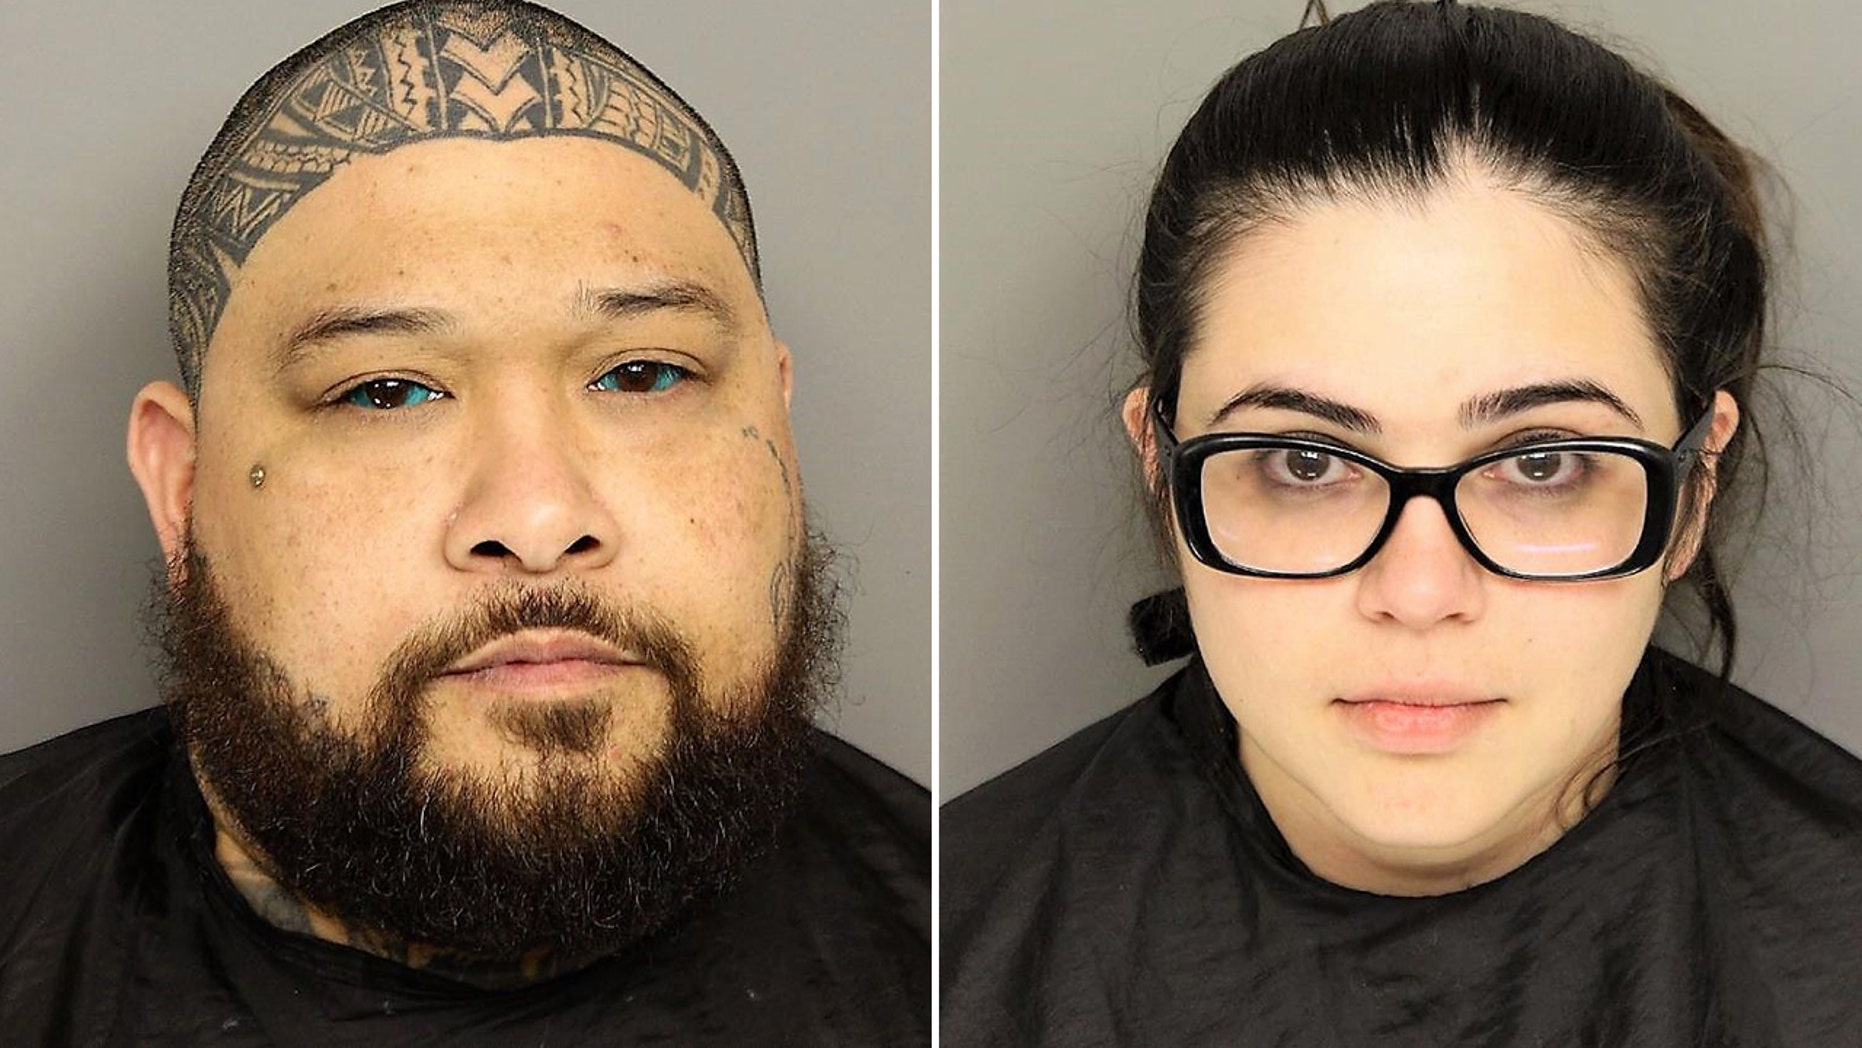 Couple charged after boy tortured with hot pepper on genitals: cops